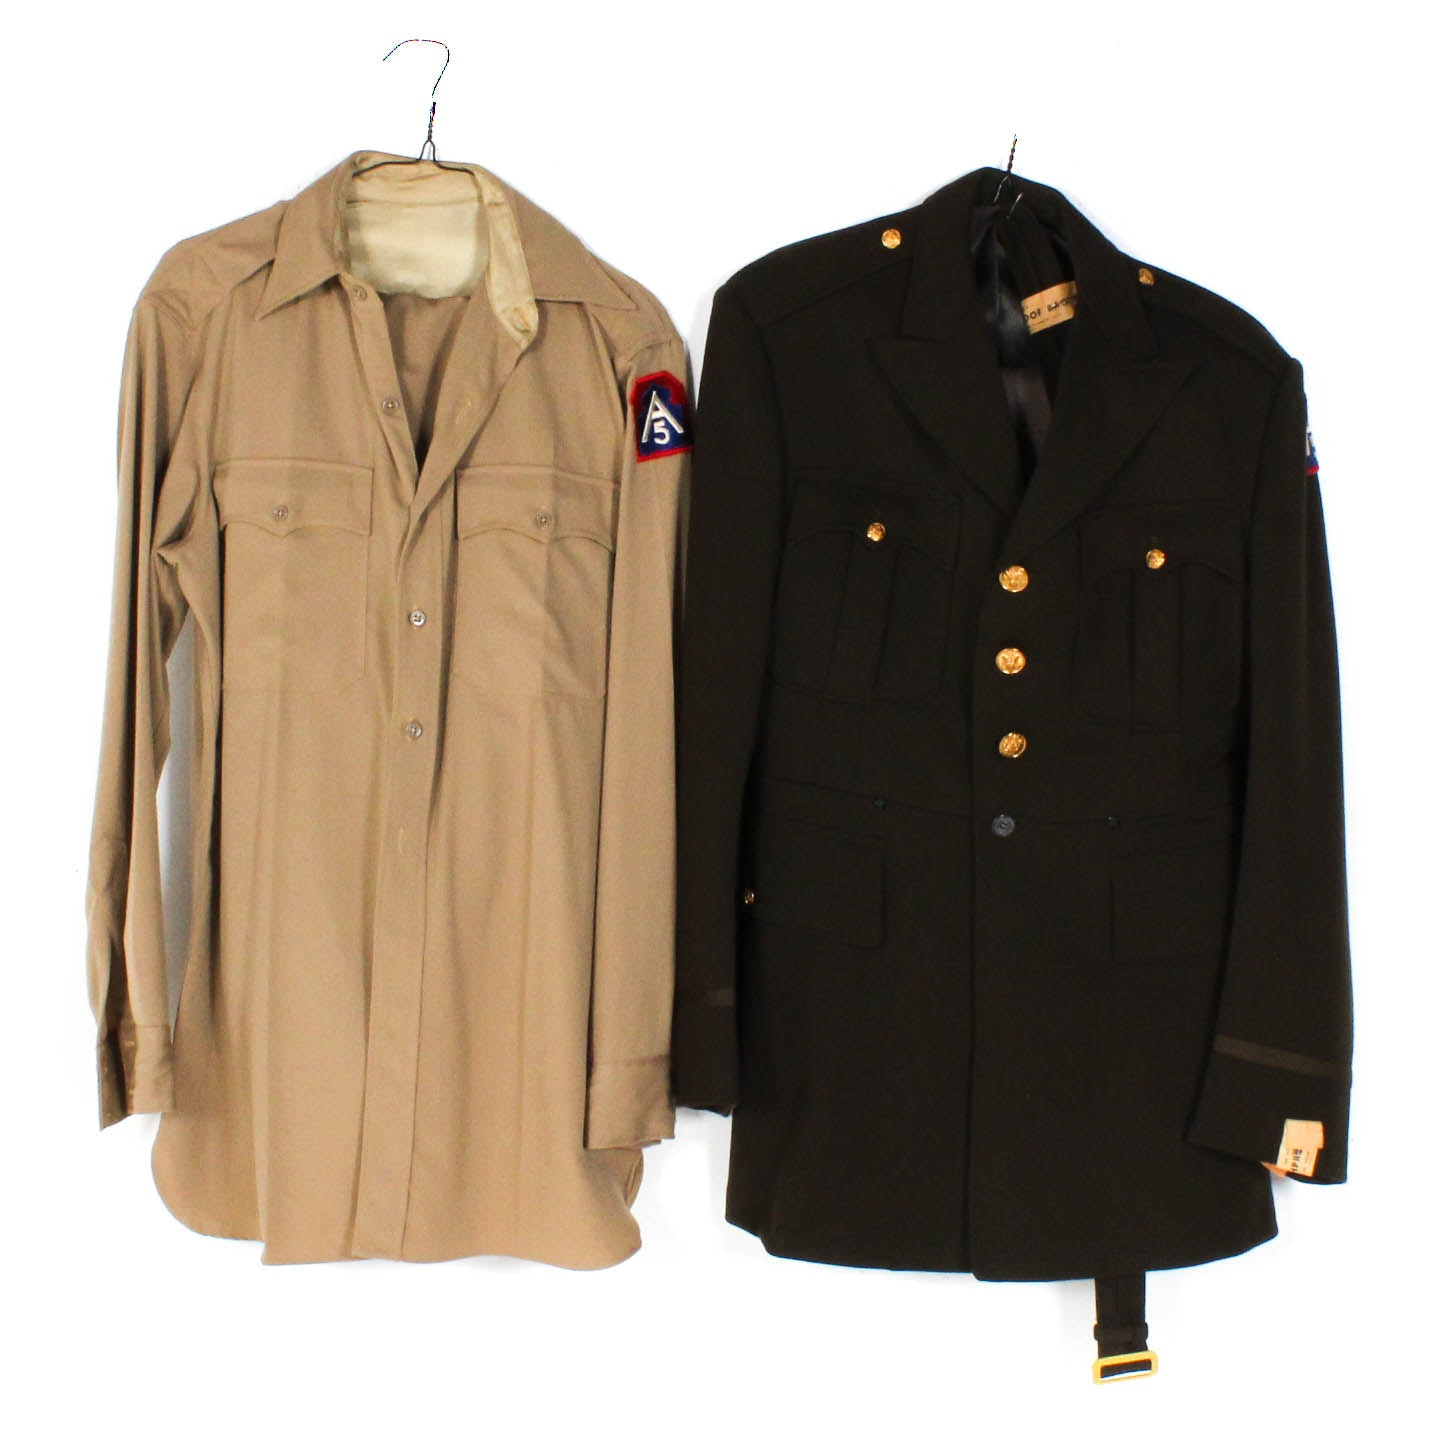 Fifth Army Uniforms